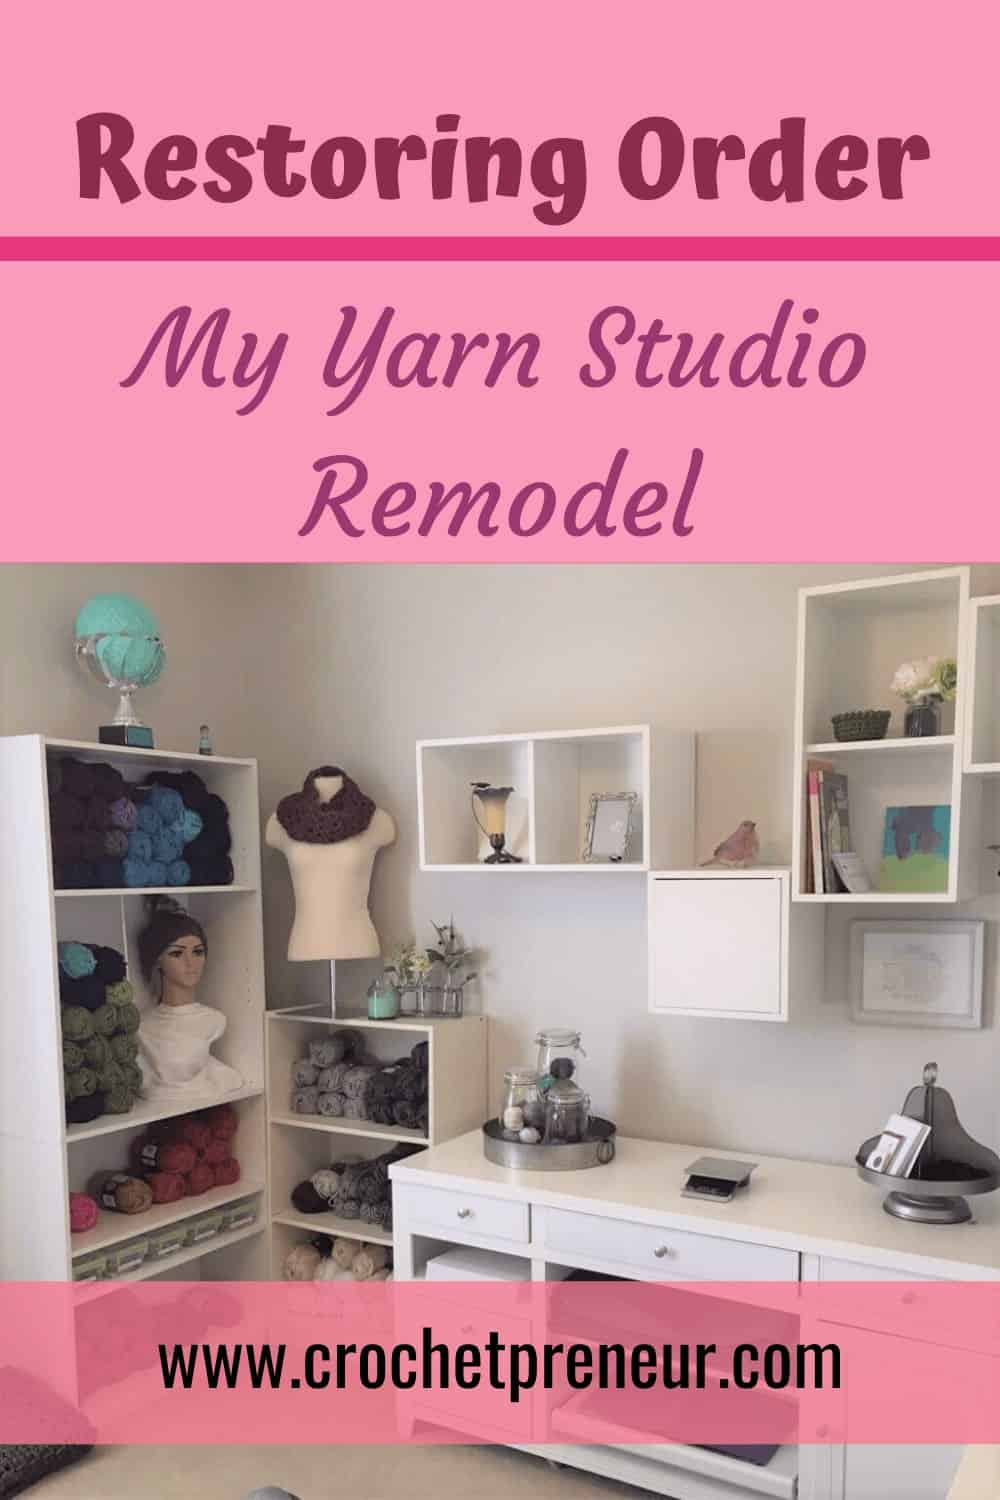 Pinterest graphic for Restoring Order: My Yarn Studio Remodel with a photo of my organized yarn studio